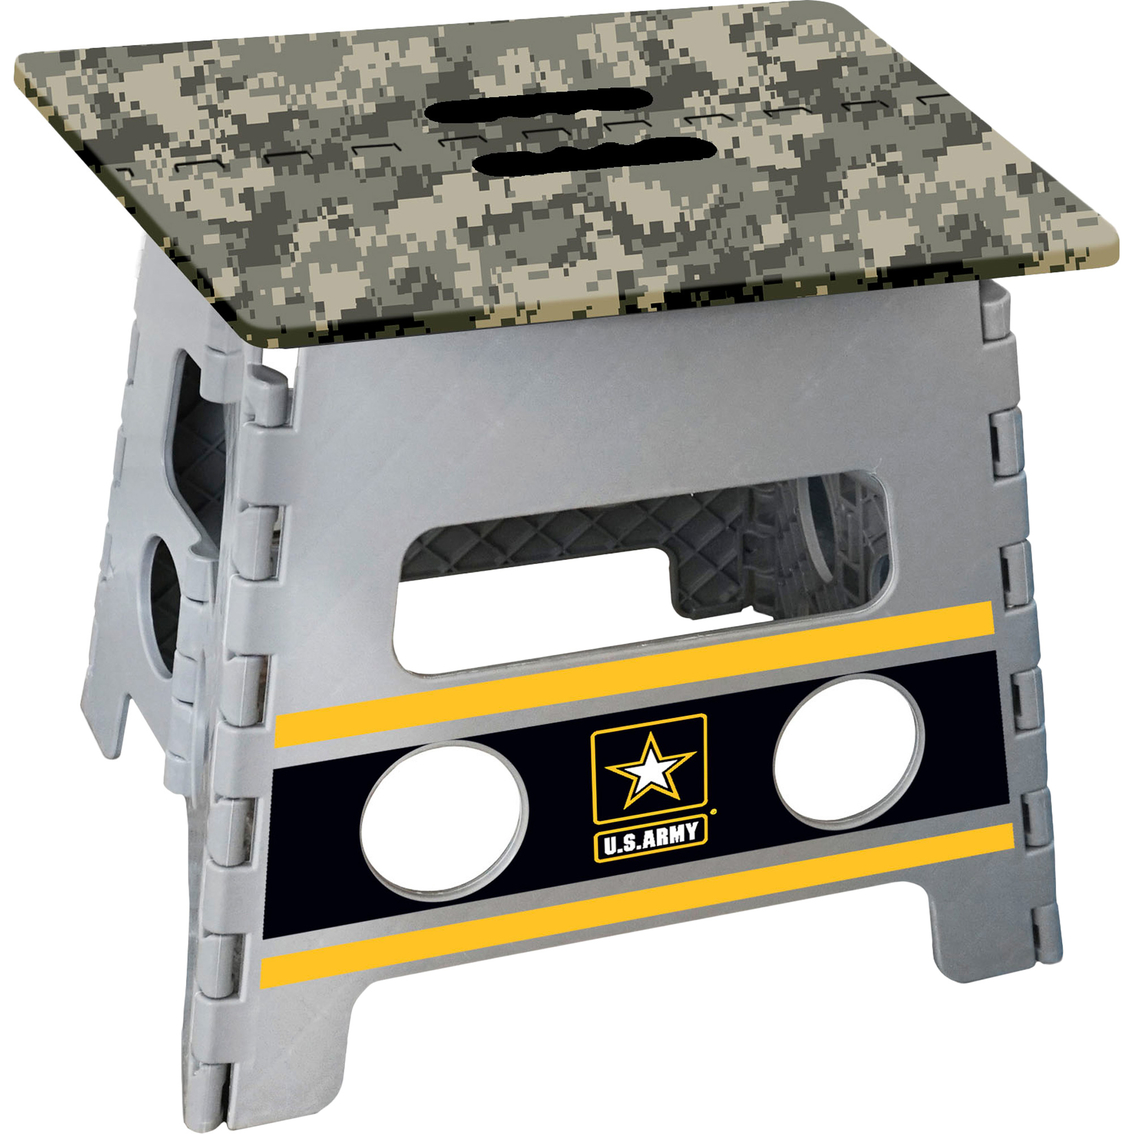 Stupendous Fan Mats Military Branch Folding Step Stool Stepladders Ibusinesslaw Wood Chair Design Ideas Ibusinesslaworg